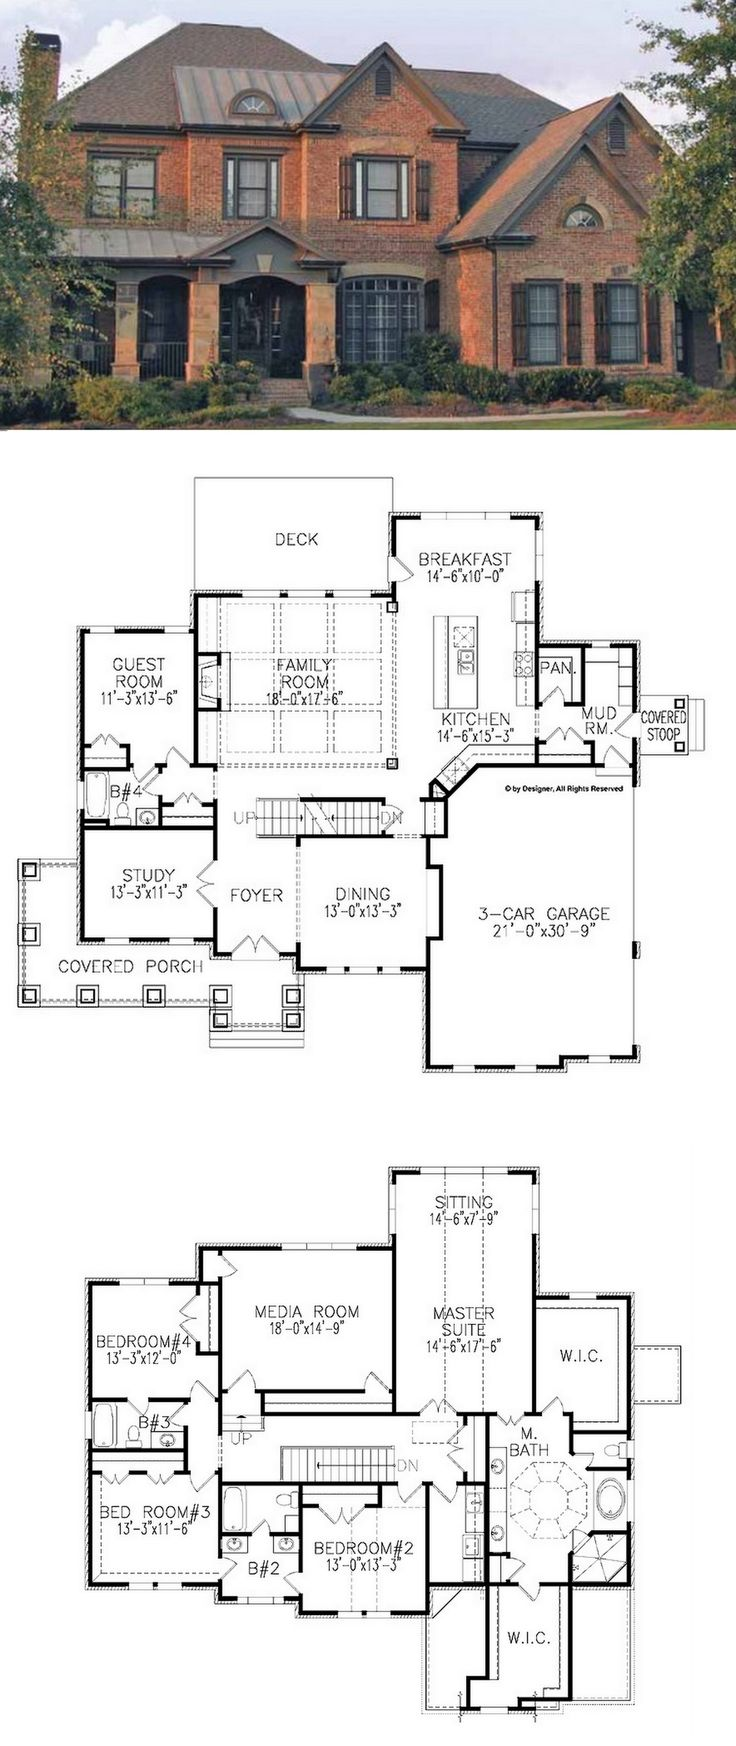 best 20 floor plans ideas on pinterest house floor plans house blueprints and home plans